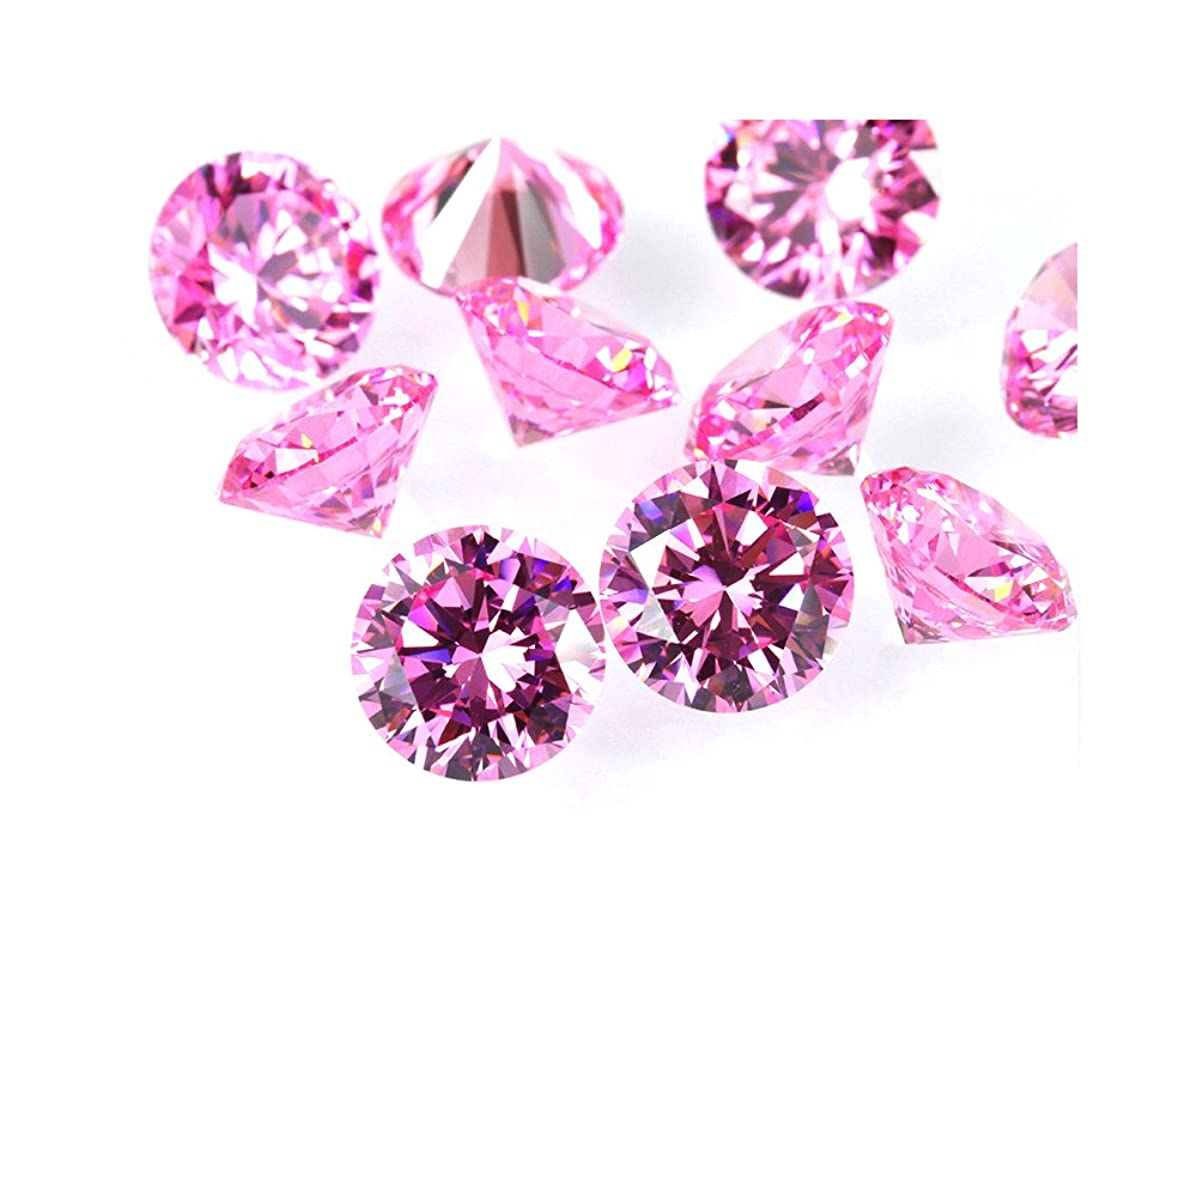 Alone Moon Loose Pink Round Cubic Zirconia high Temperature do not Change Color Support Wax inlaying (3.0mm-500pcs)